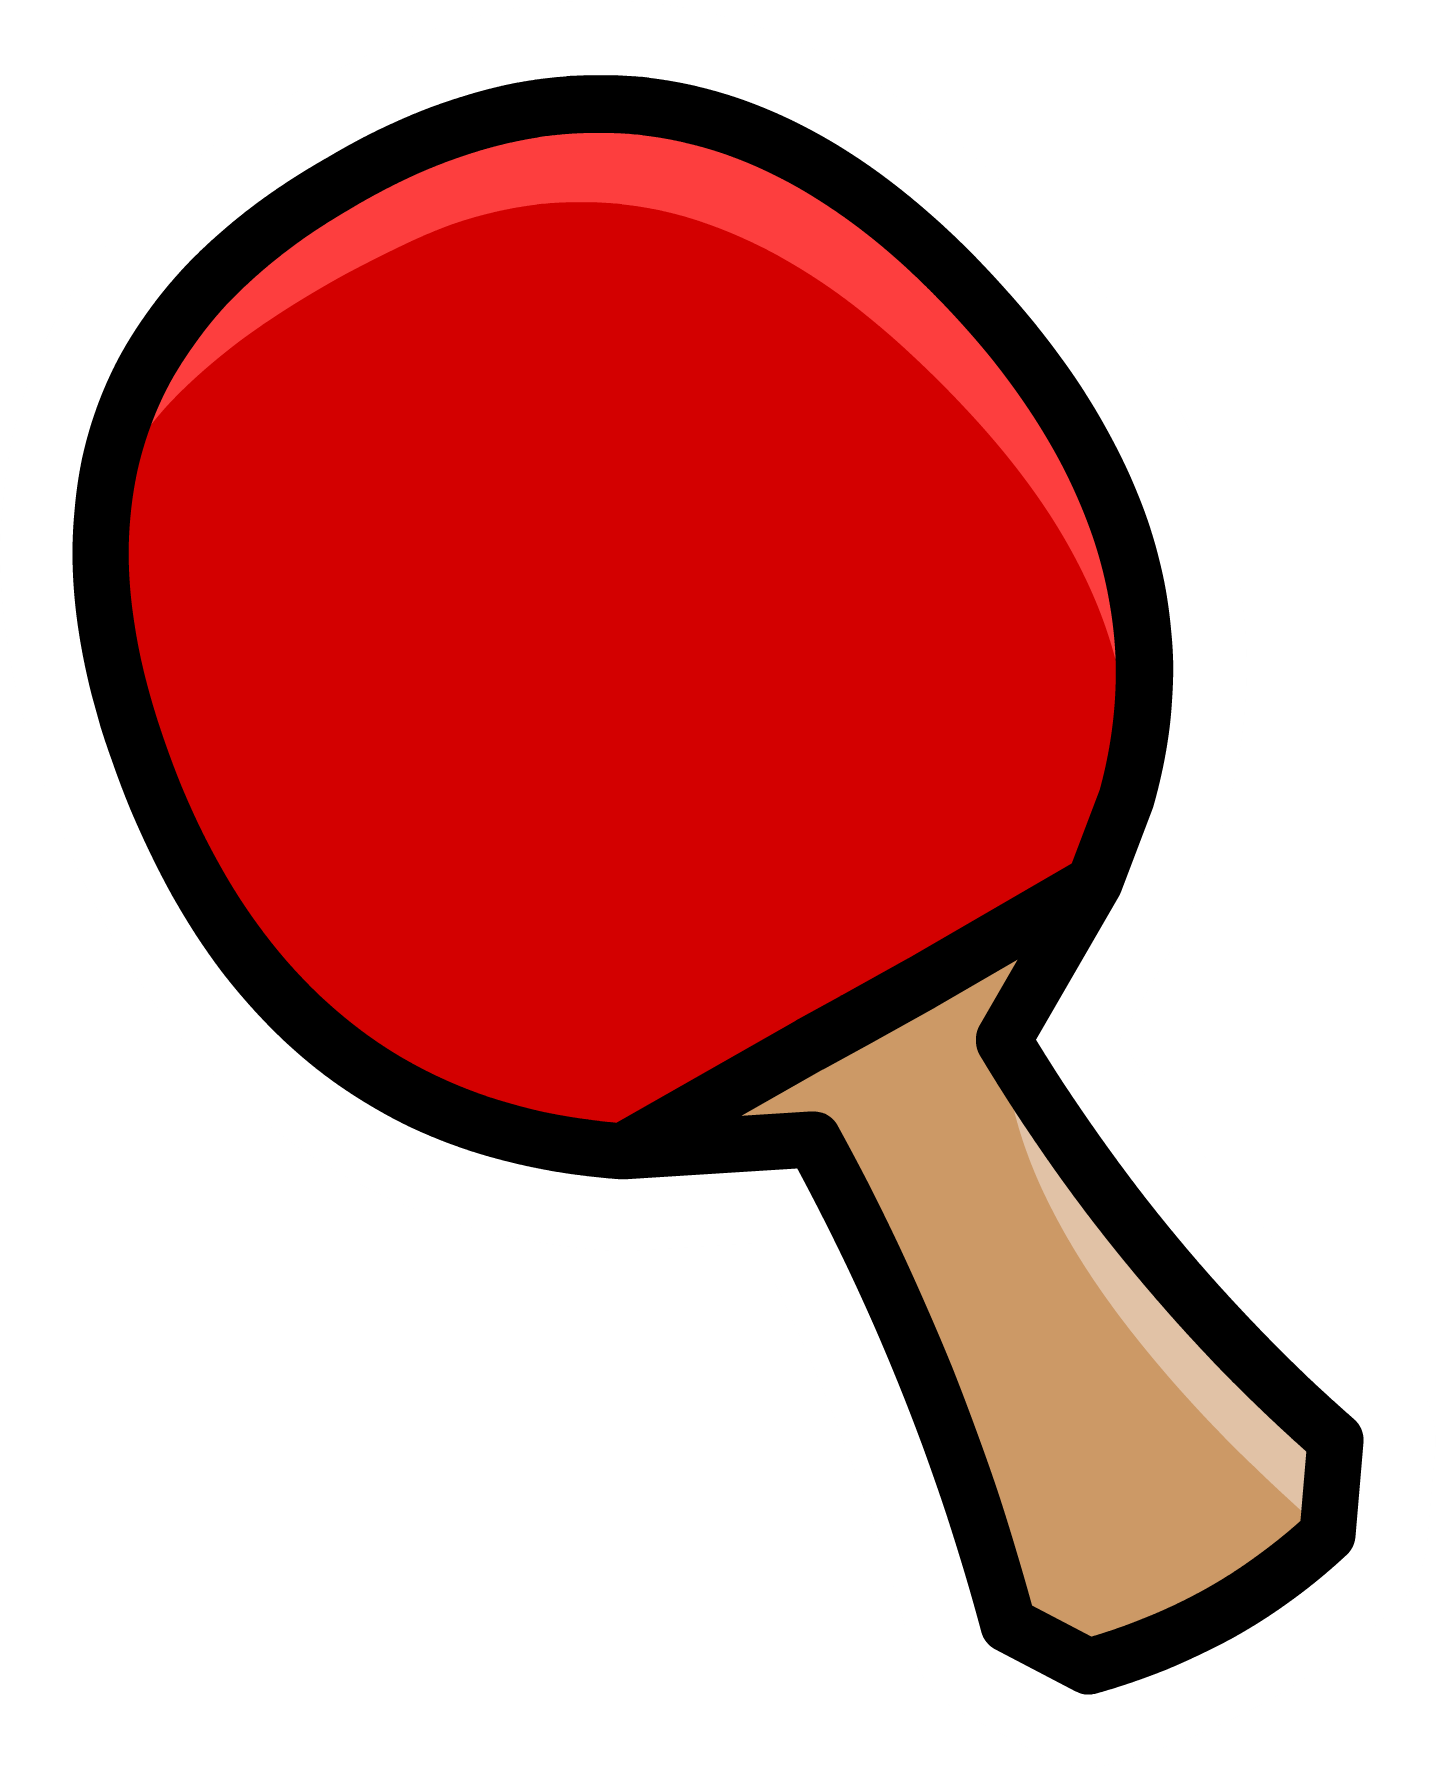 Table tennis racket png - Displaying 20 Gt Images For Snow Fort Clipart